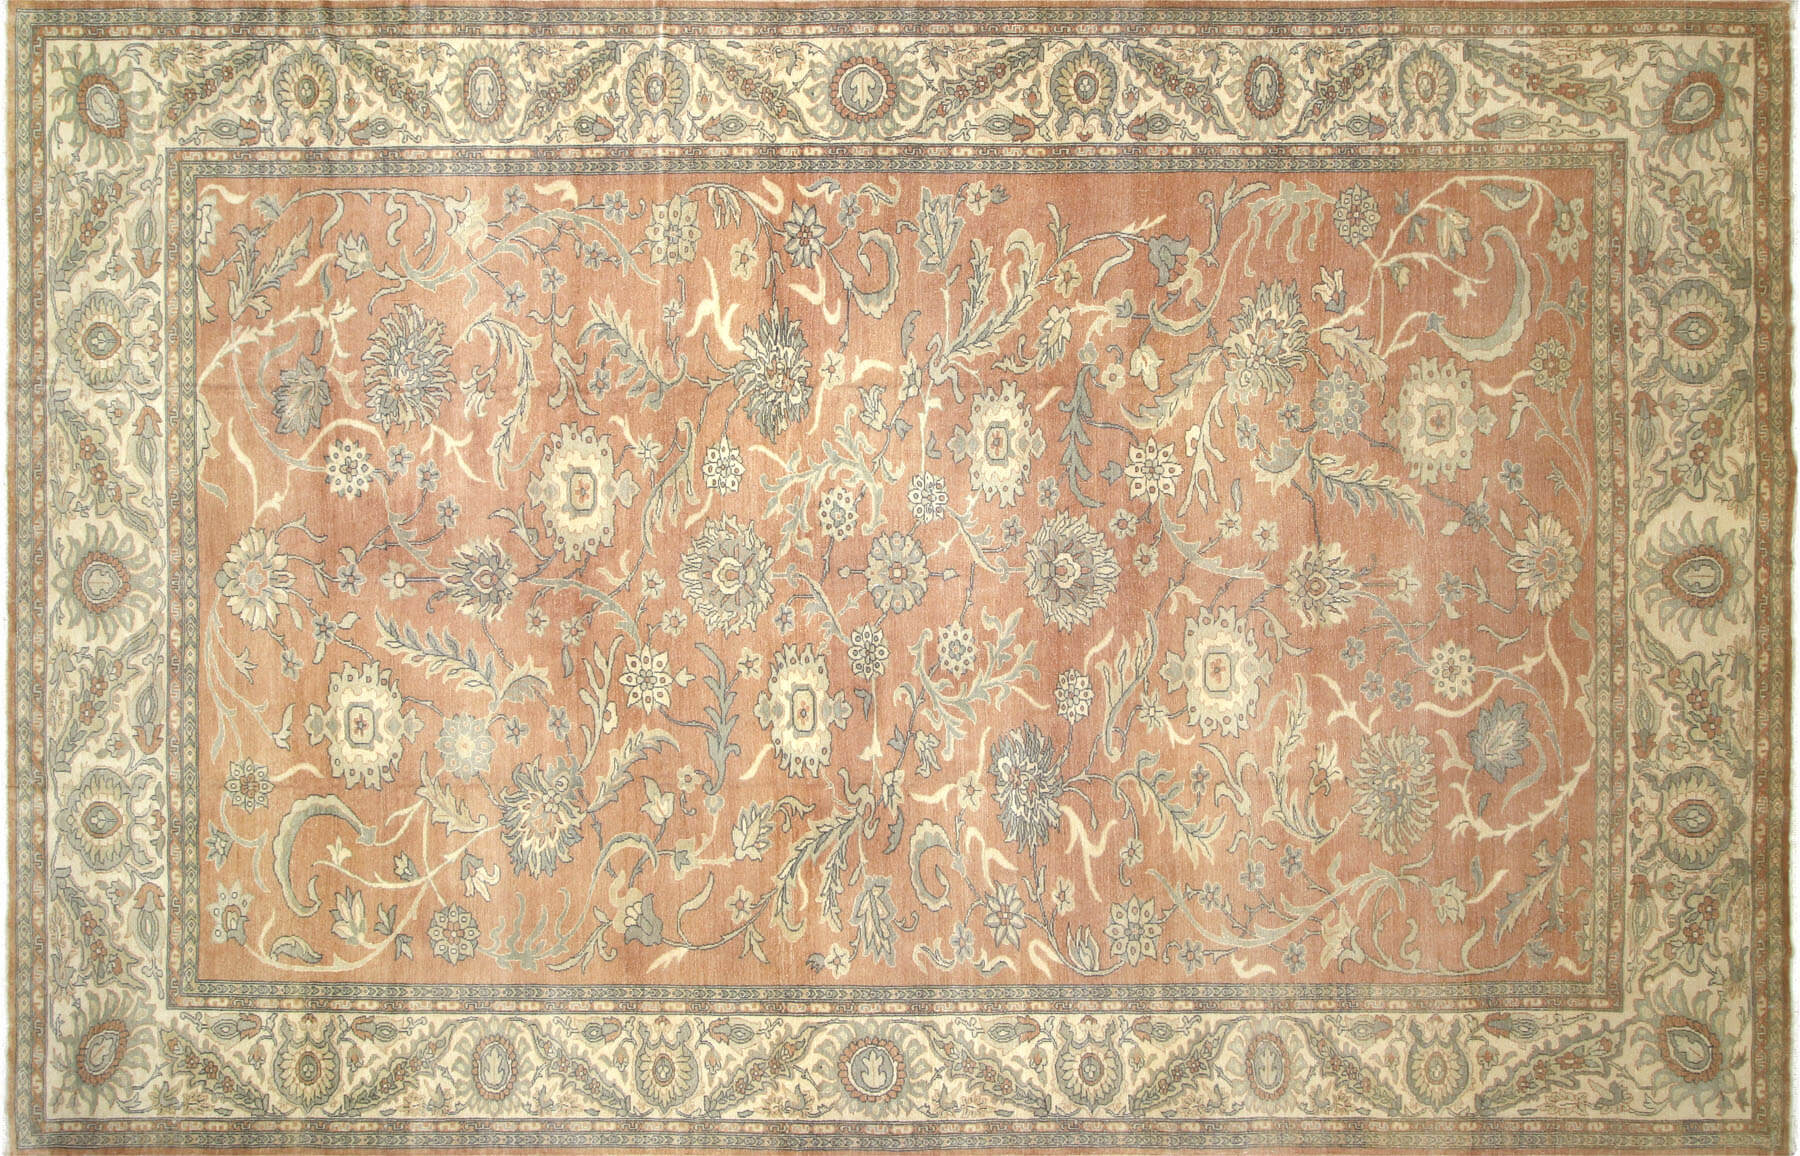 "Recently Woven Egyptian Sultanabad Carpet - 11'8"" x 17'11"""